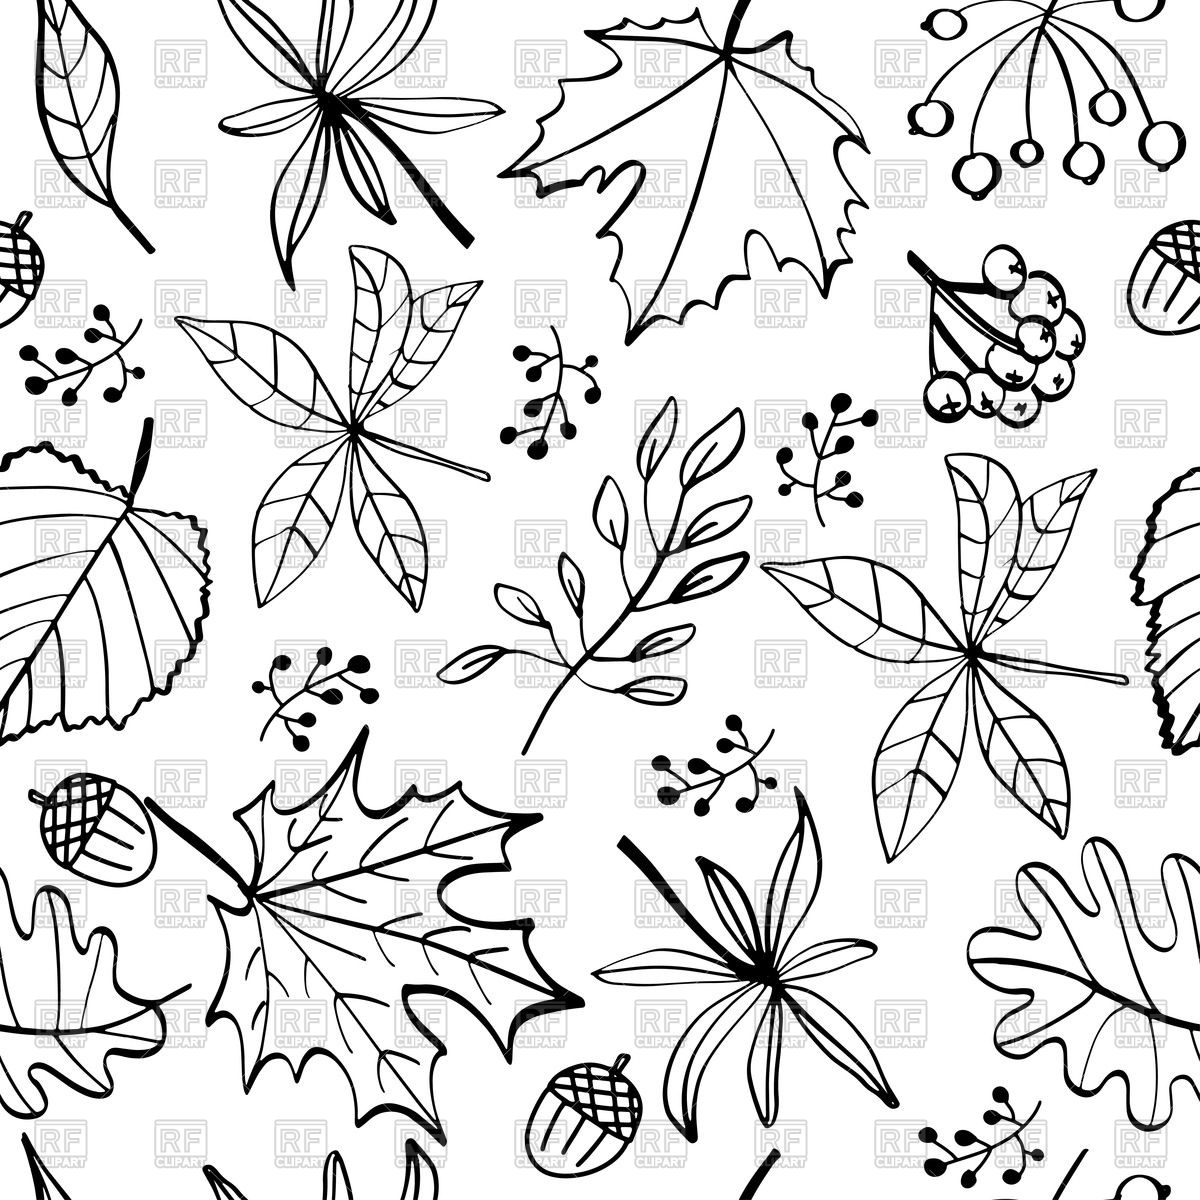 Autumn leaves seamless pattern, black and white Stock Vector Image.